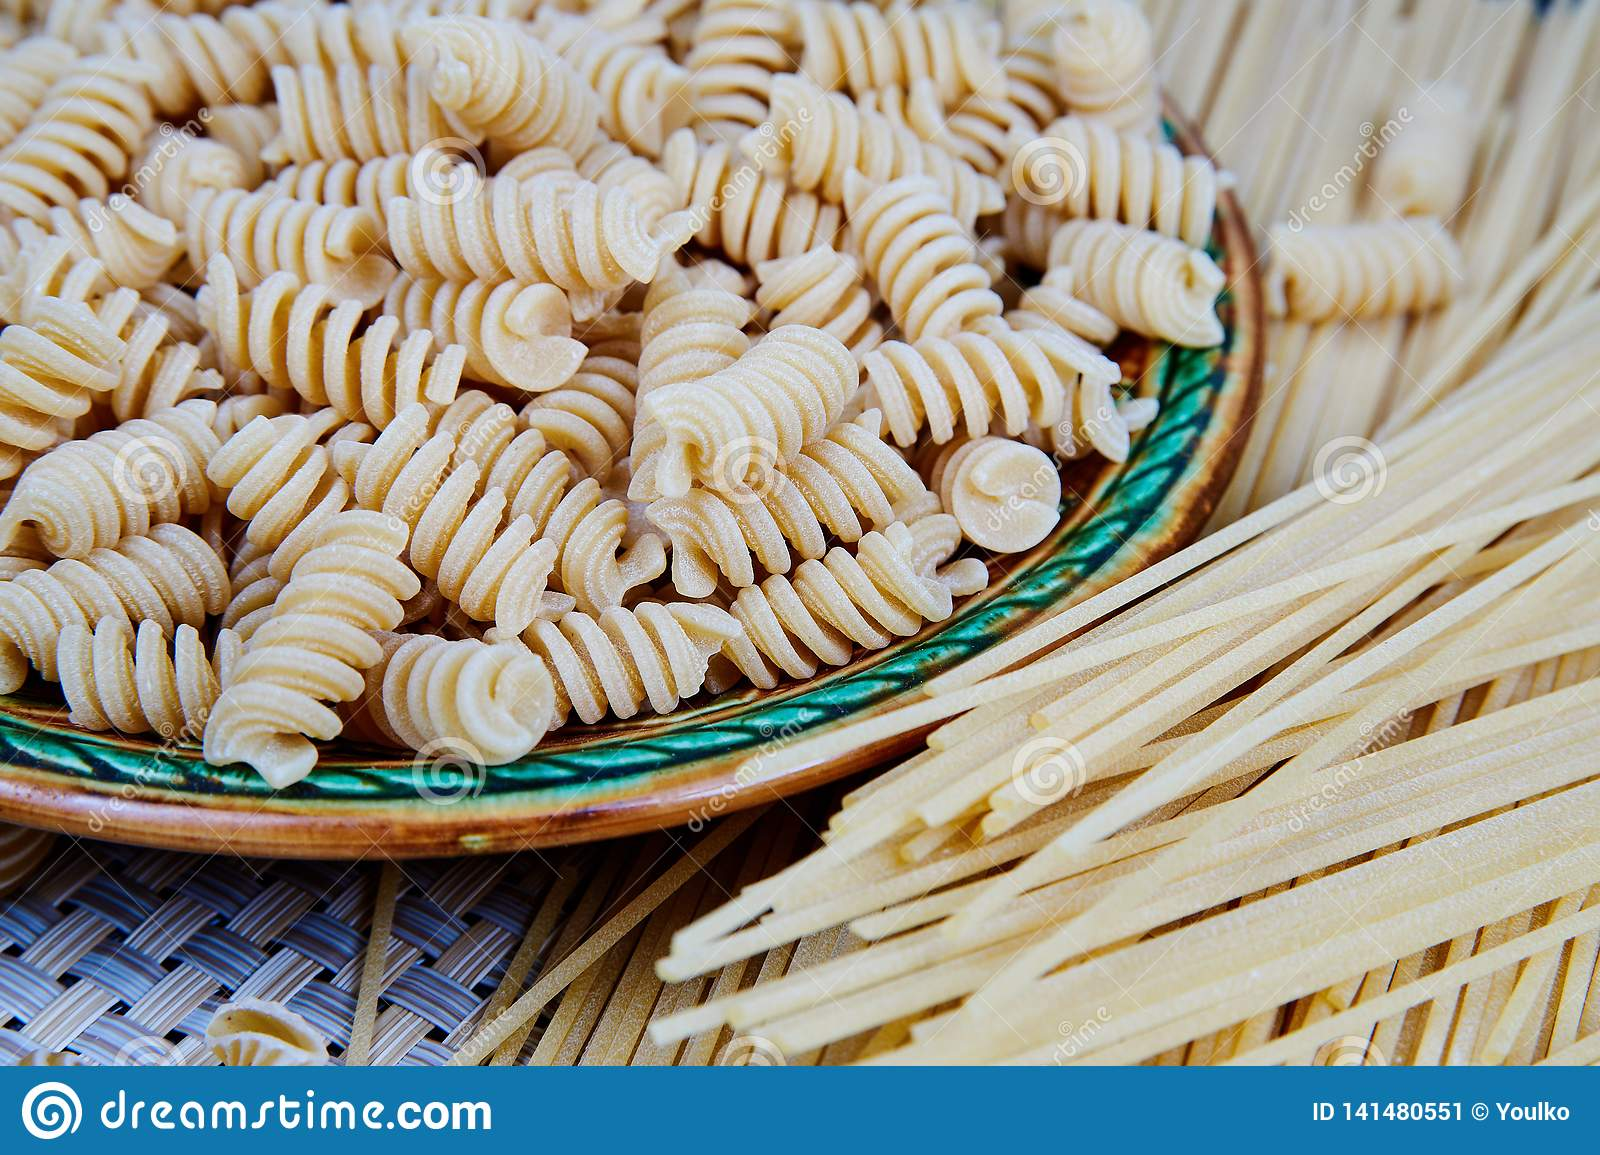 raw whole-grain pasta in a plate on a wicker cloth on the table. top view